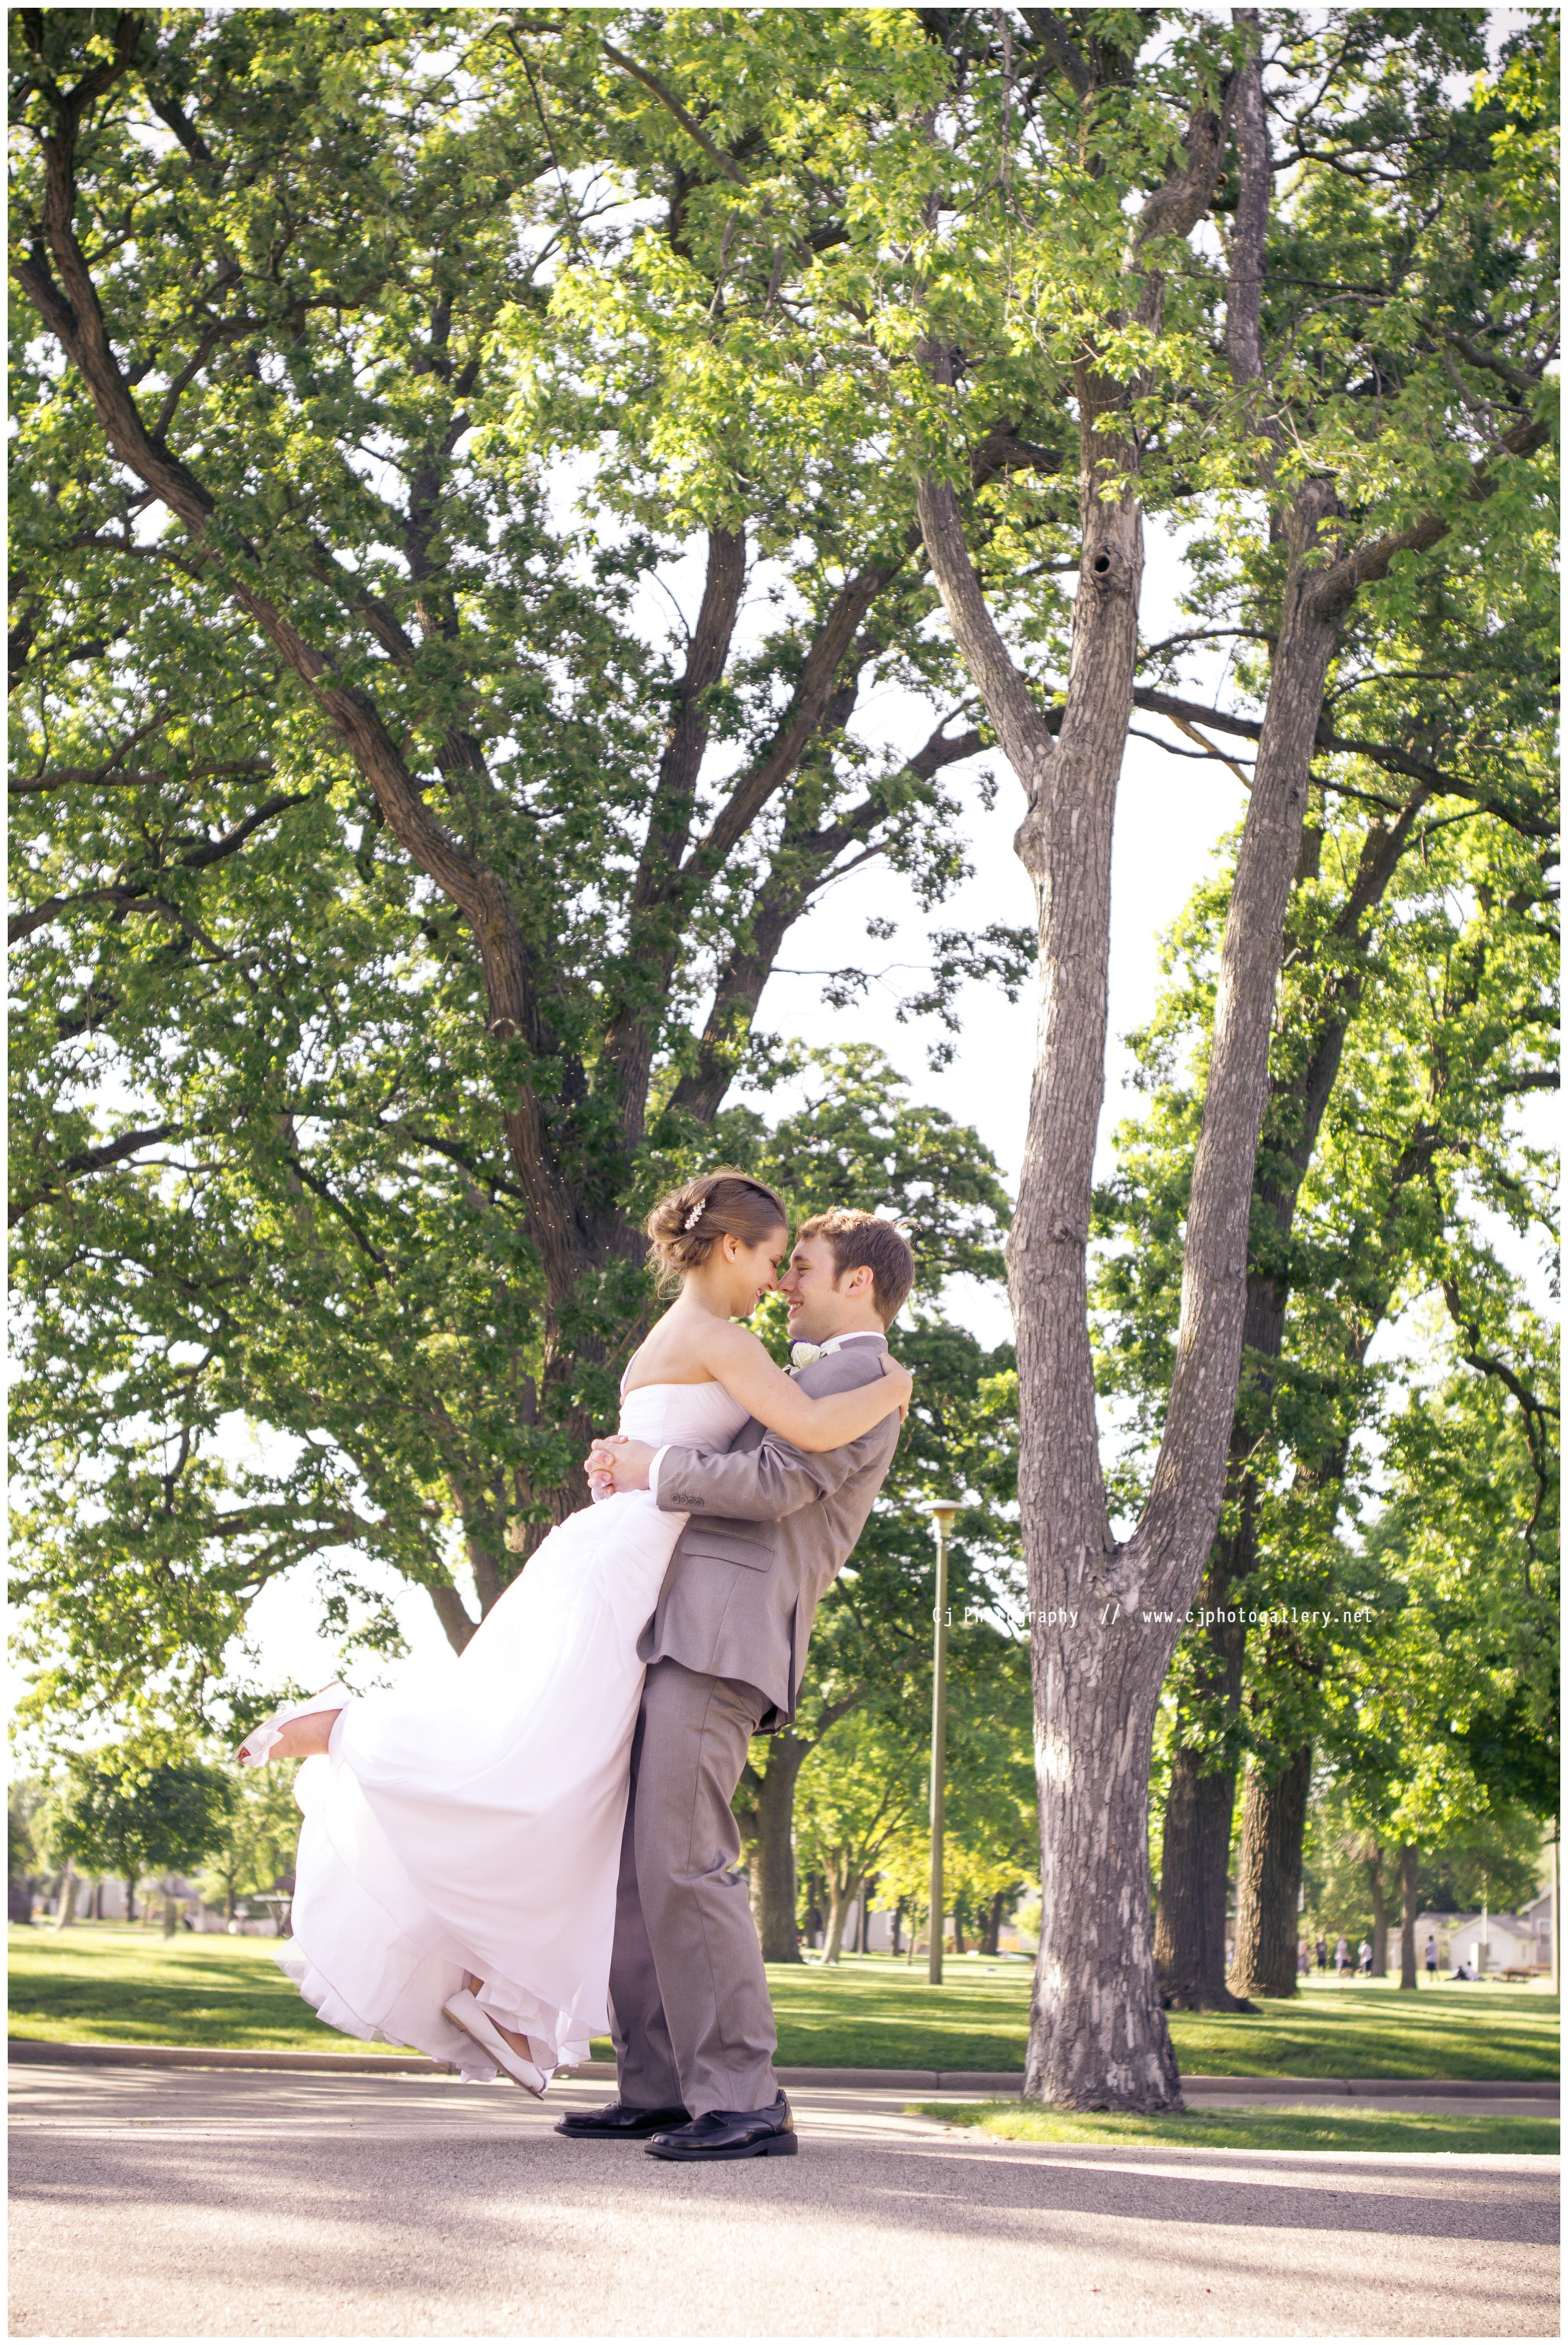 Oshkosh Wisconsin Wedding Photography - Cj Photography